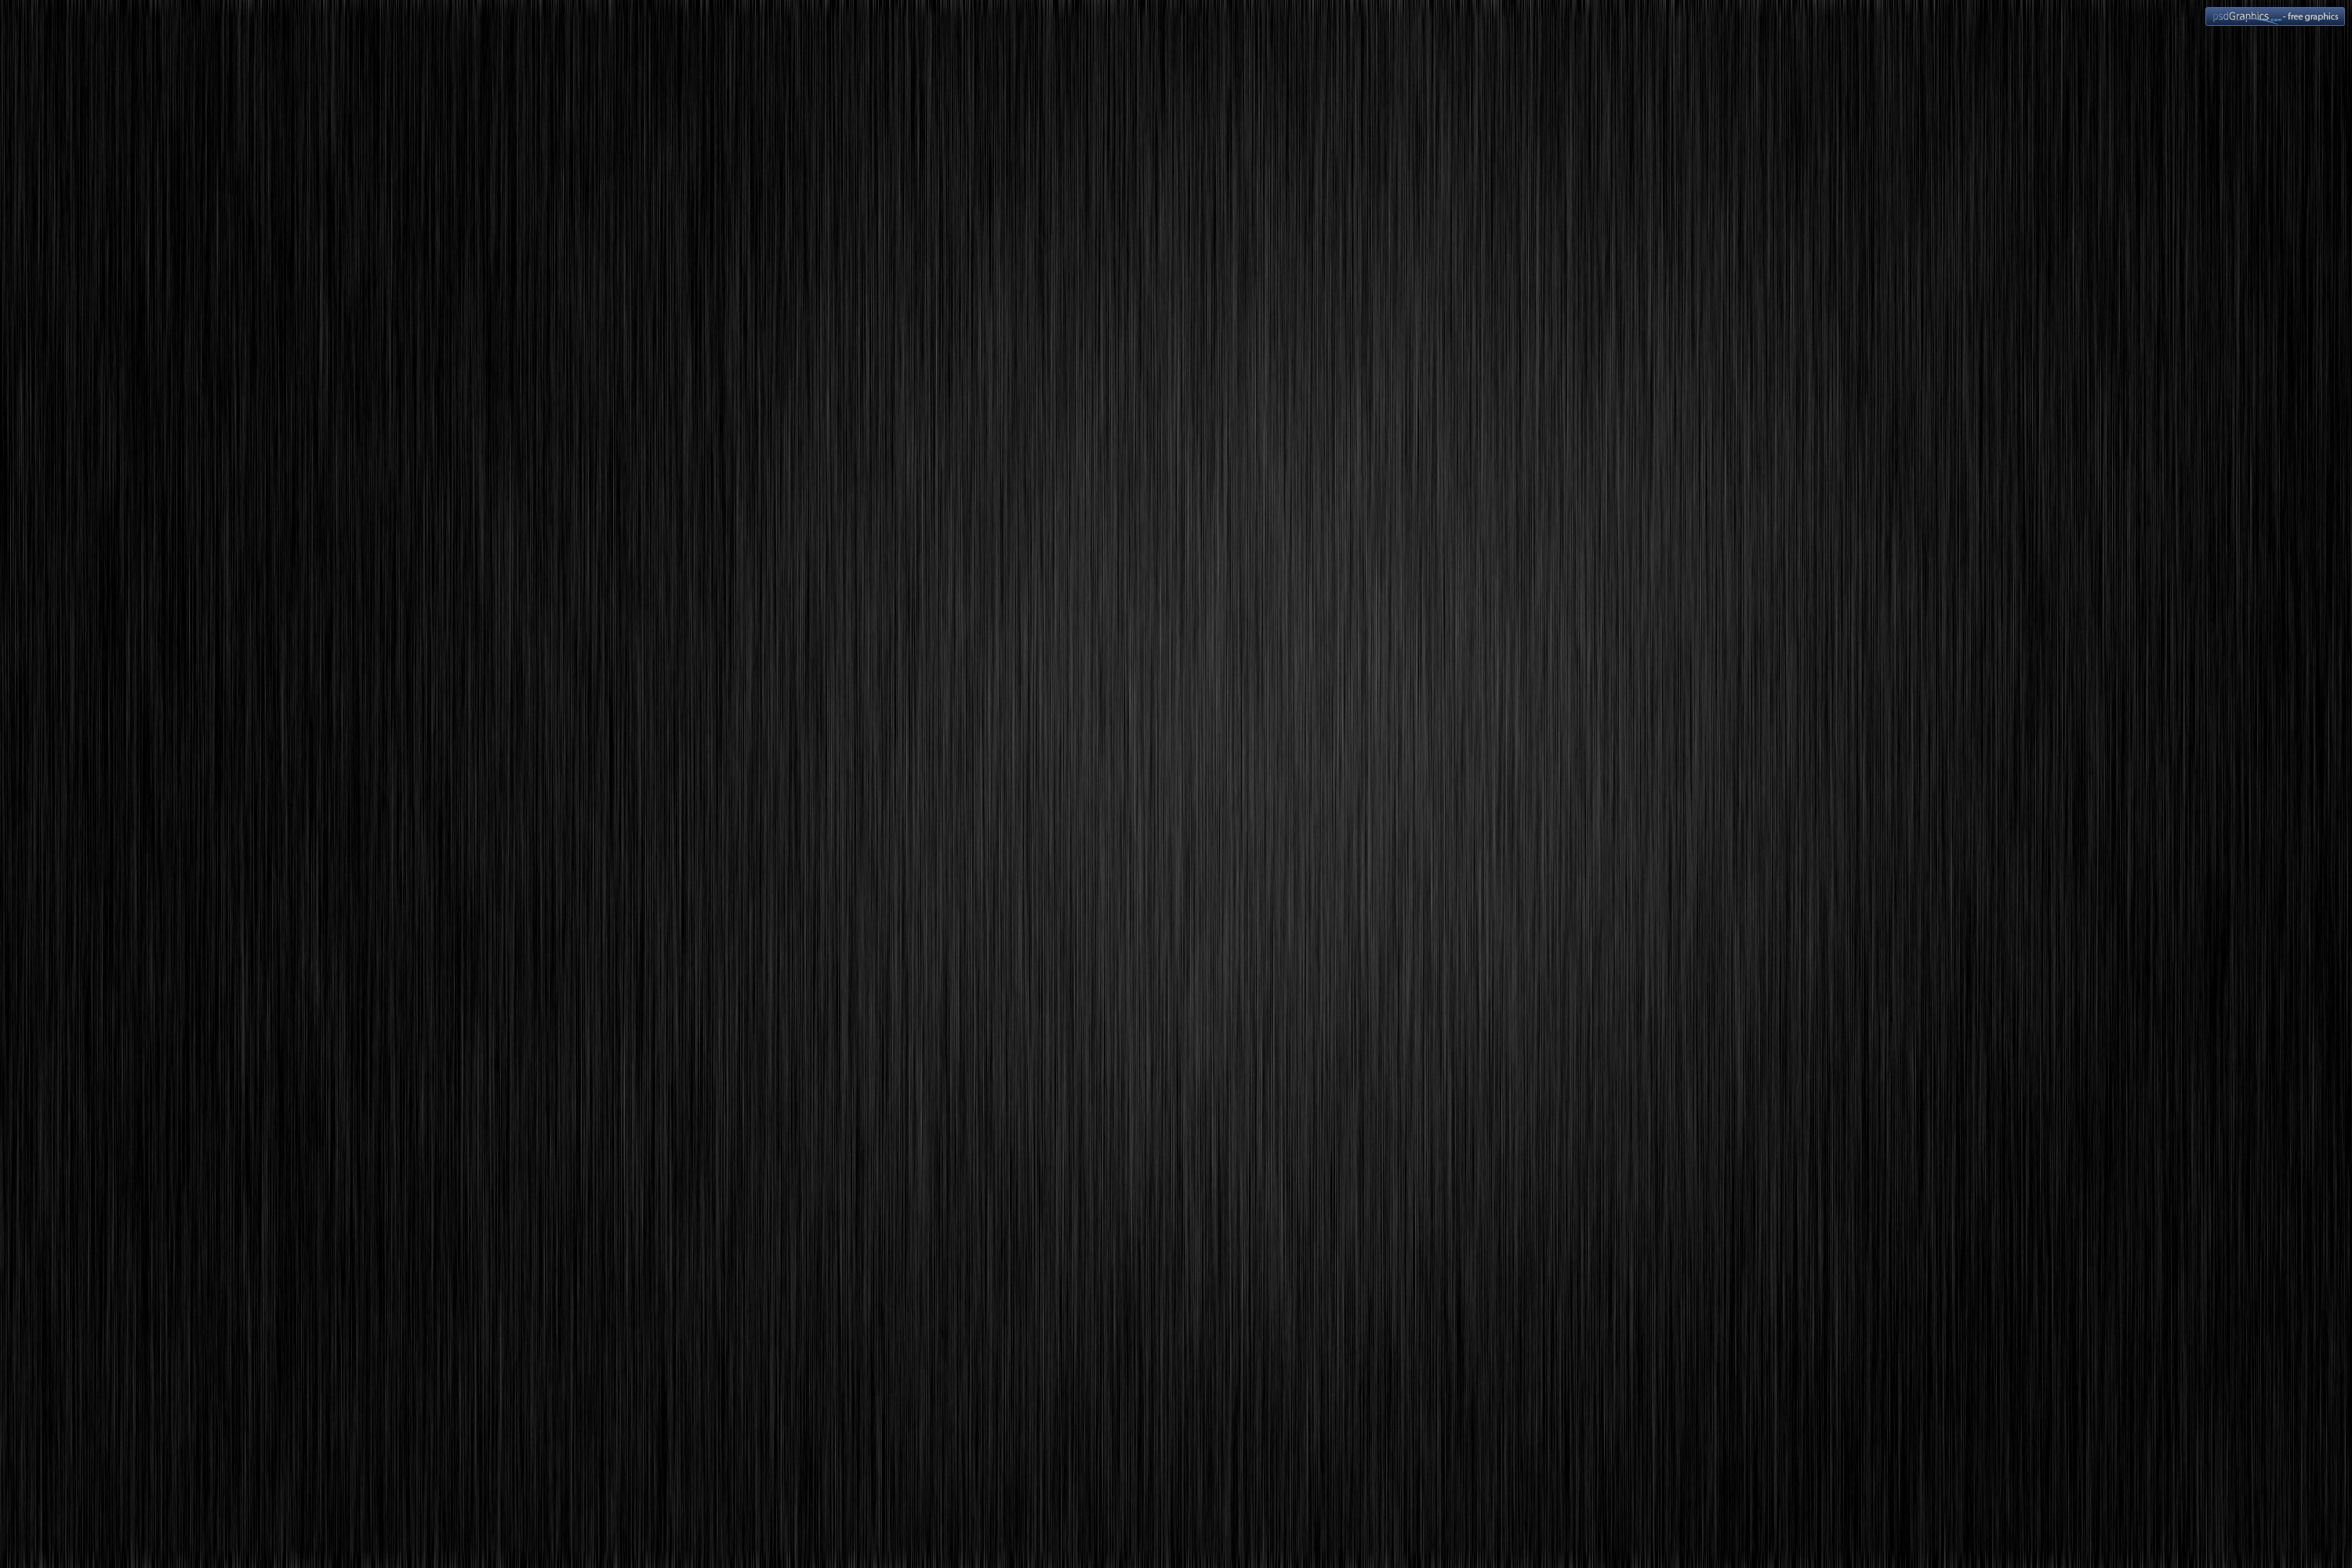 Dark Ppt Backgrounds   PowerPoint Backgrounds for 3000x2000